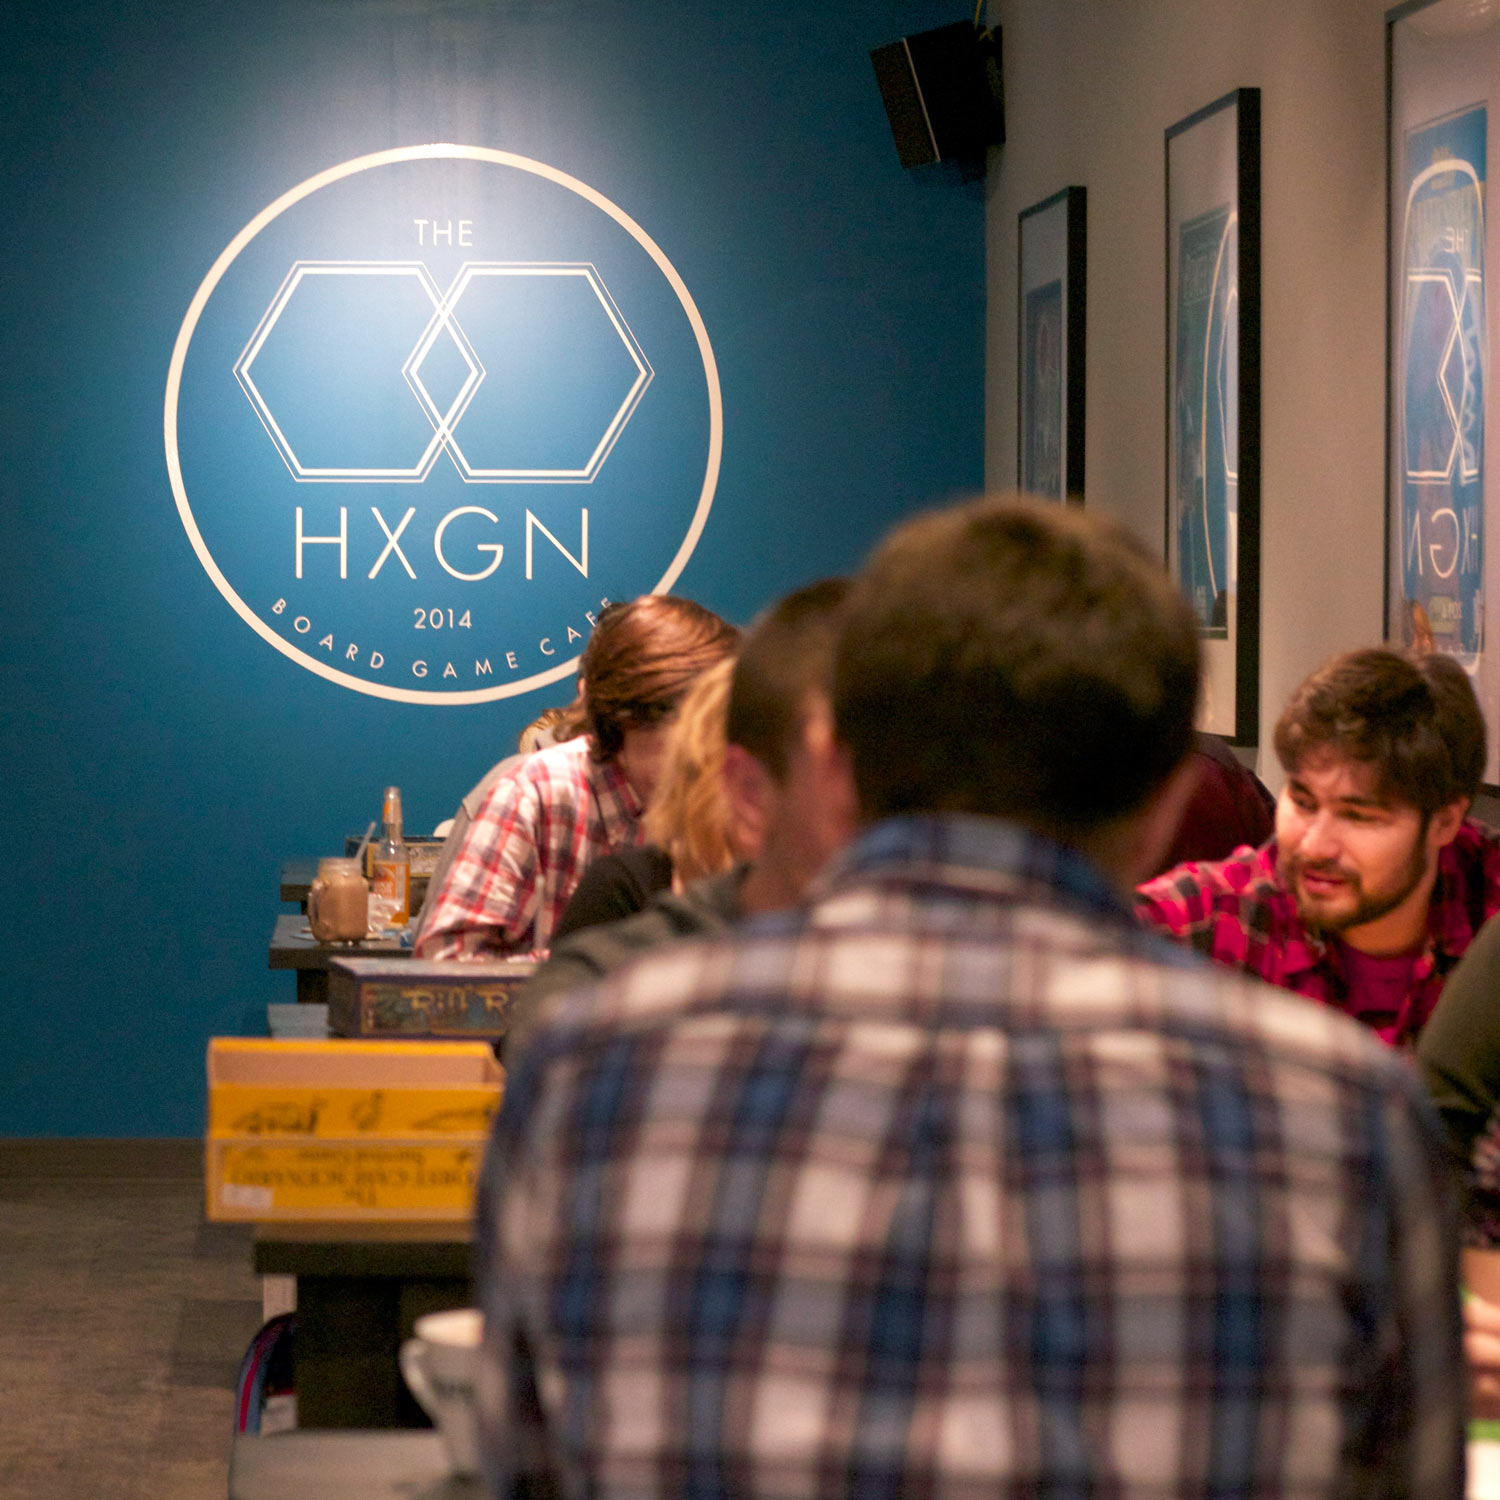 About The Hexagon Board Game Cafe